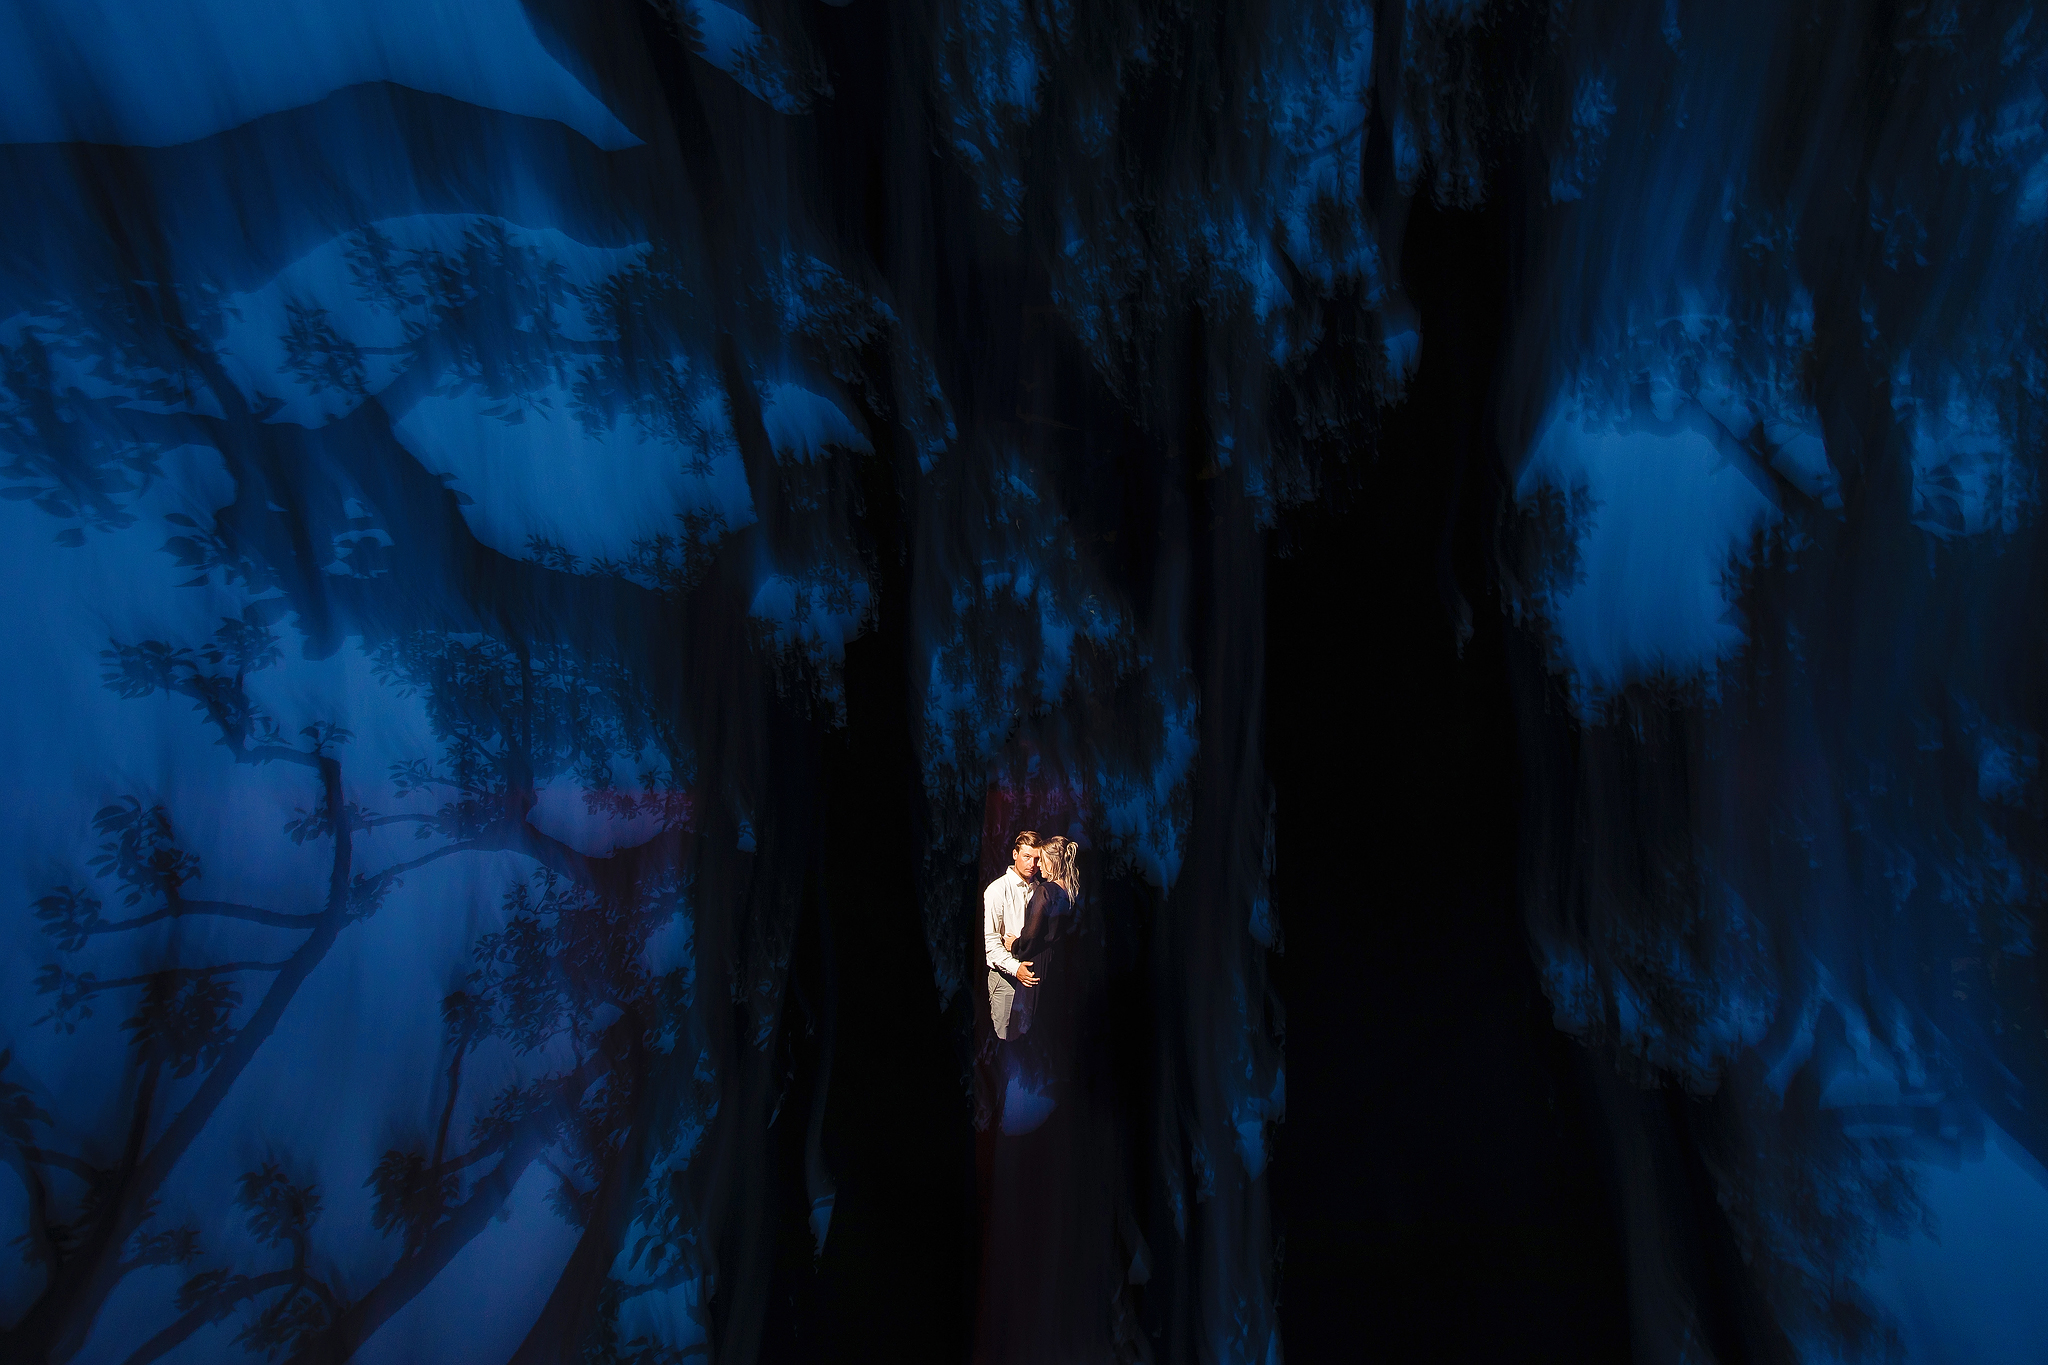 Couple against dark blue sky and silhouette trees- photo by Ruan Redelinghuys Photography